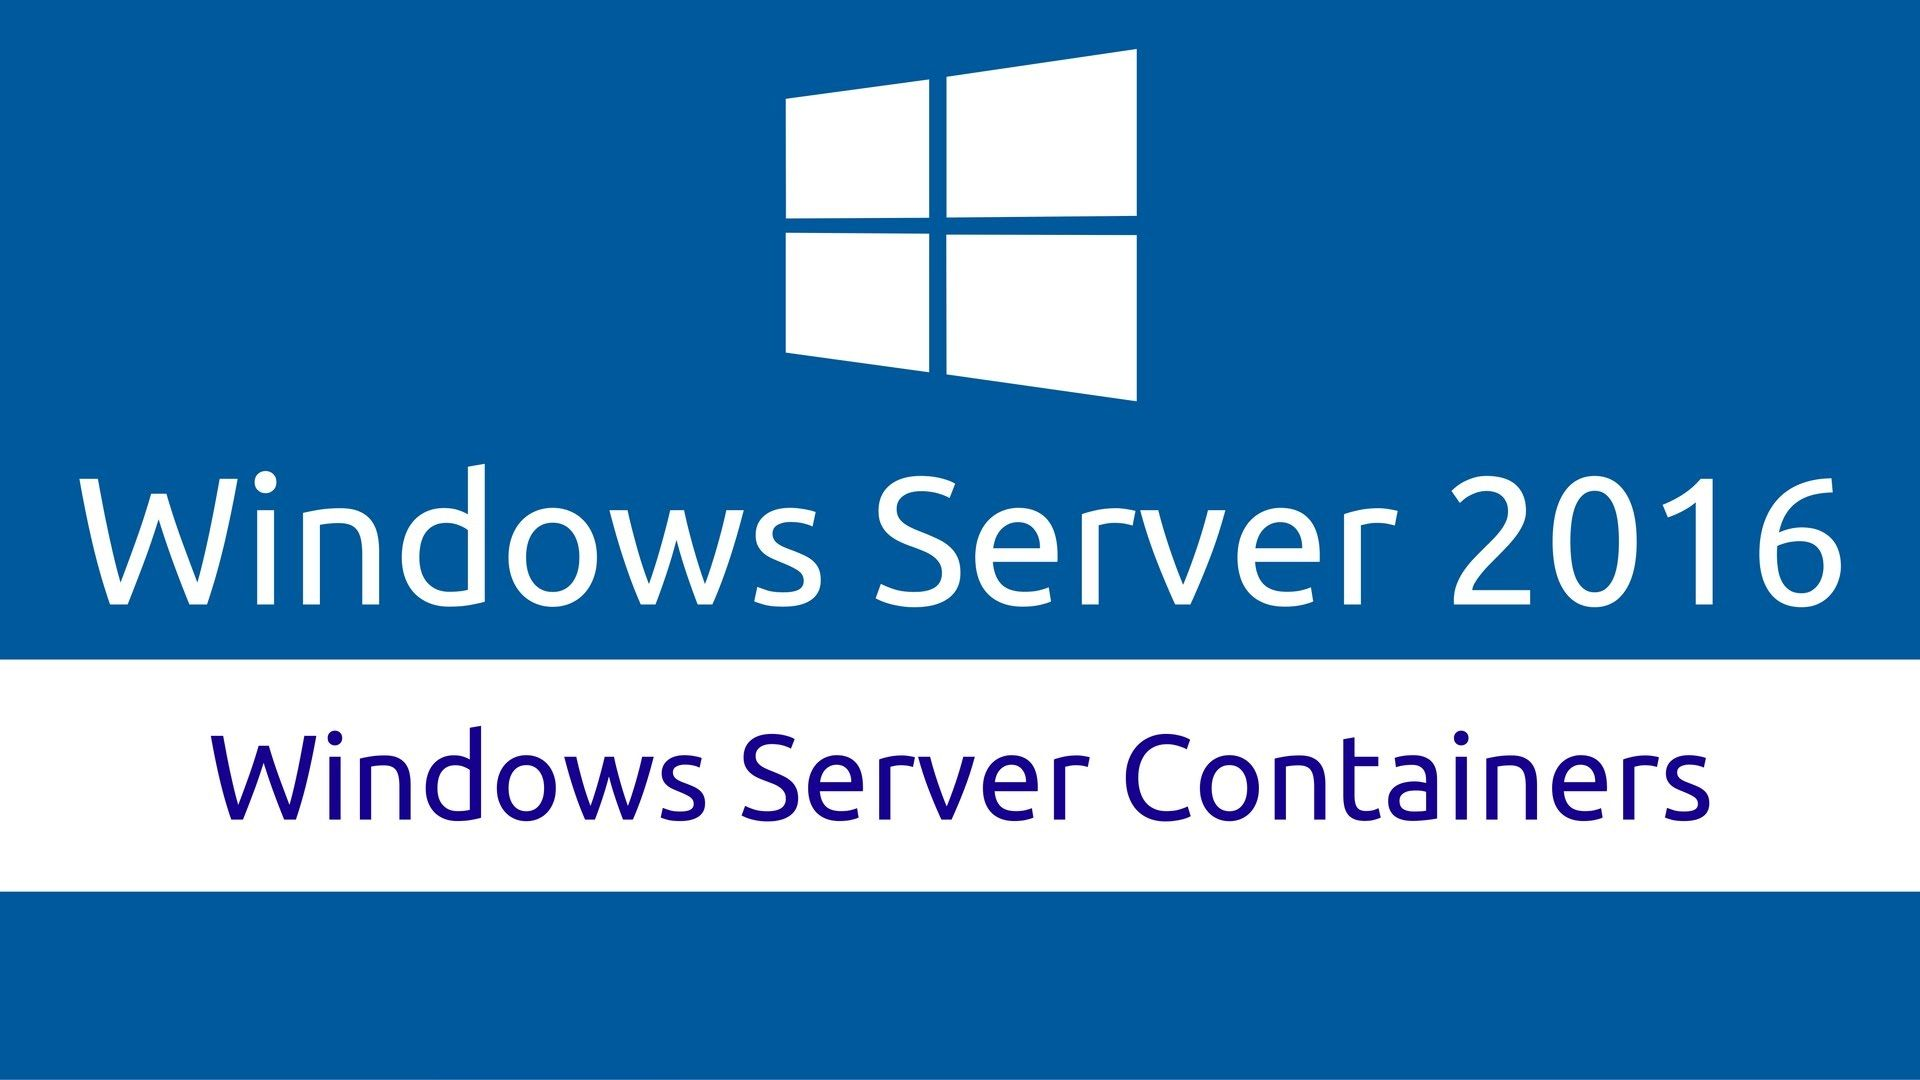 Linux Containers On Windows Server 2016